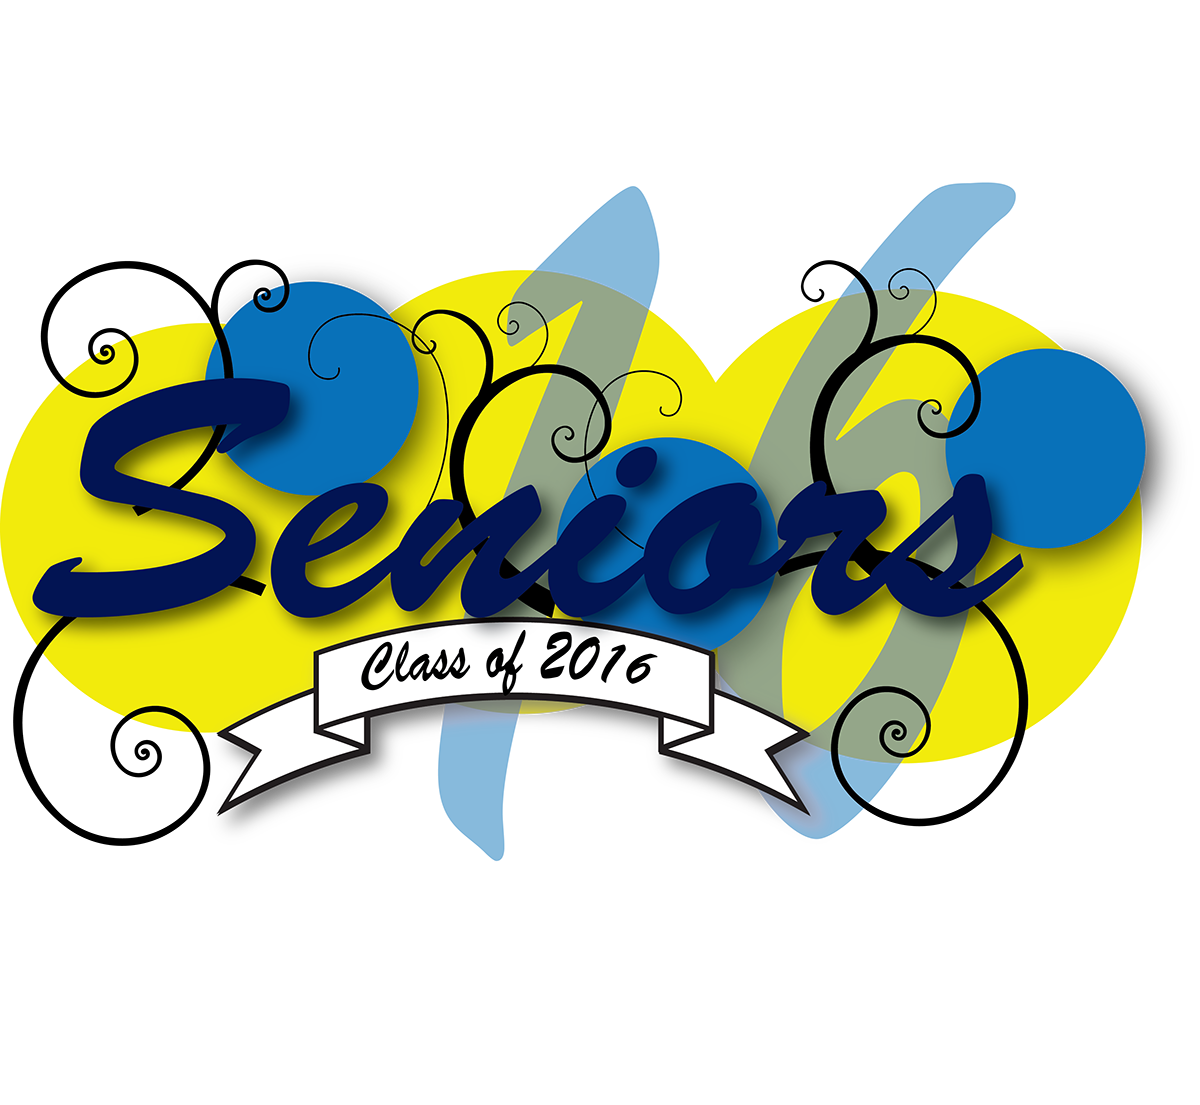 Class of 2016 png. Tka senior shirt design